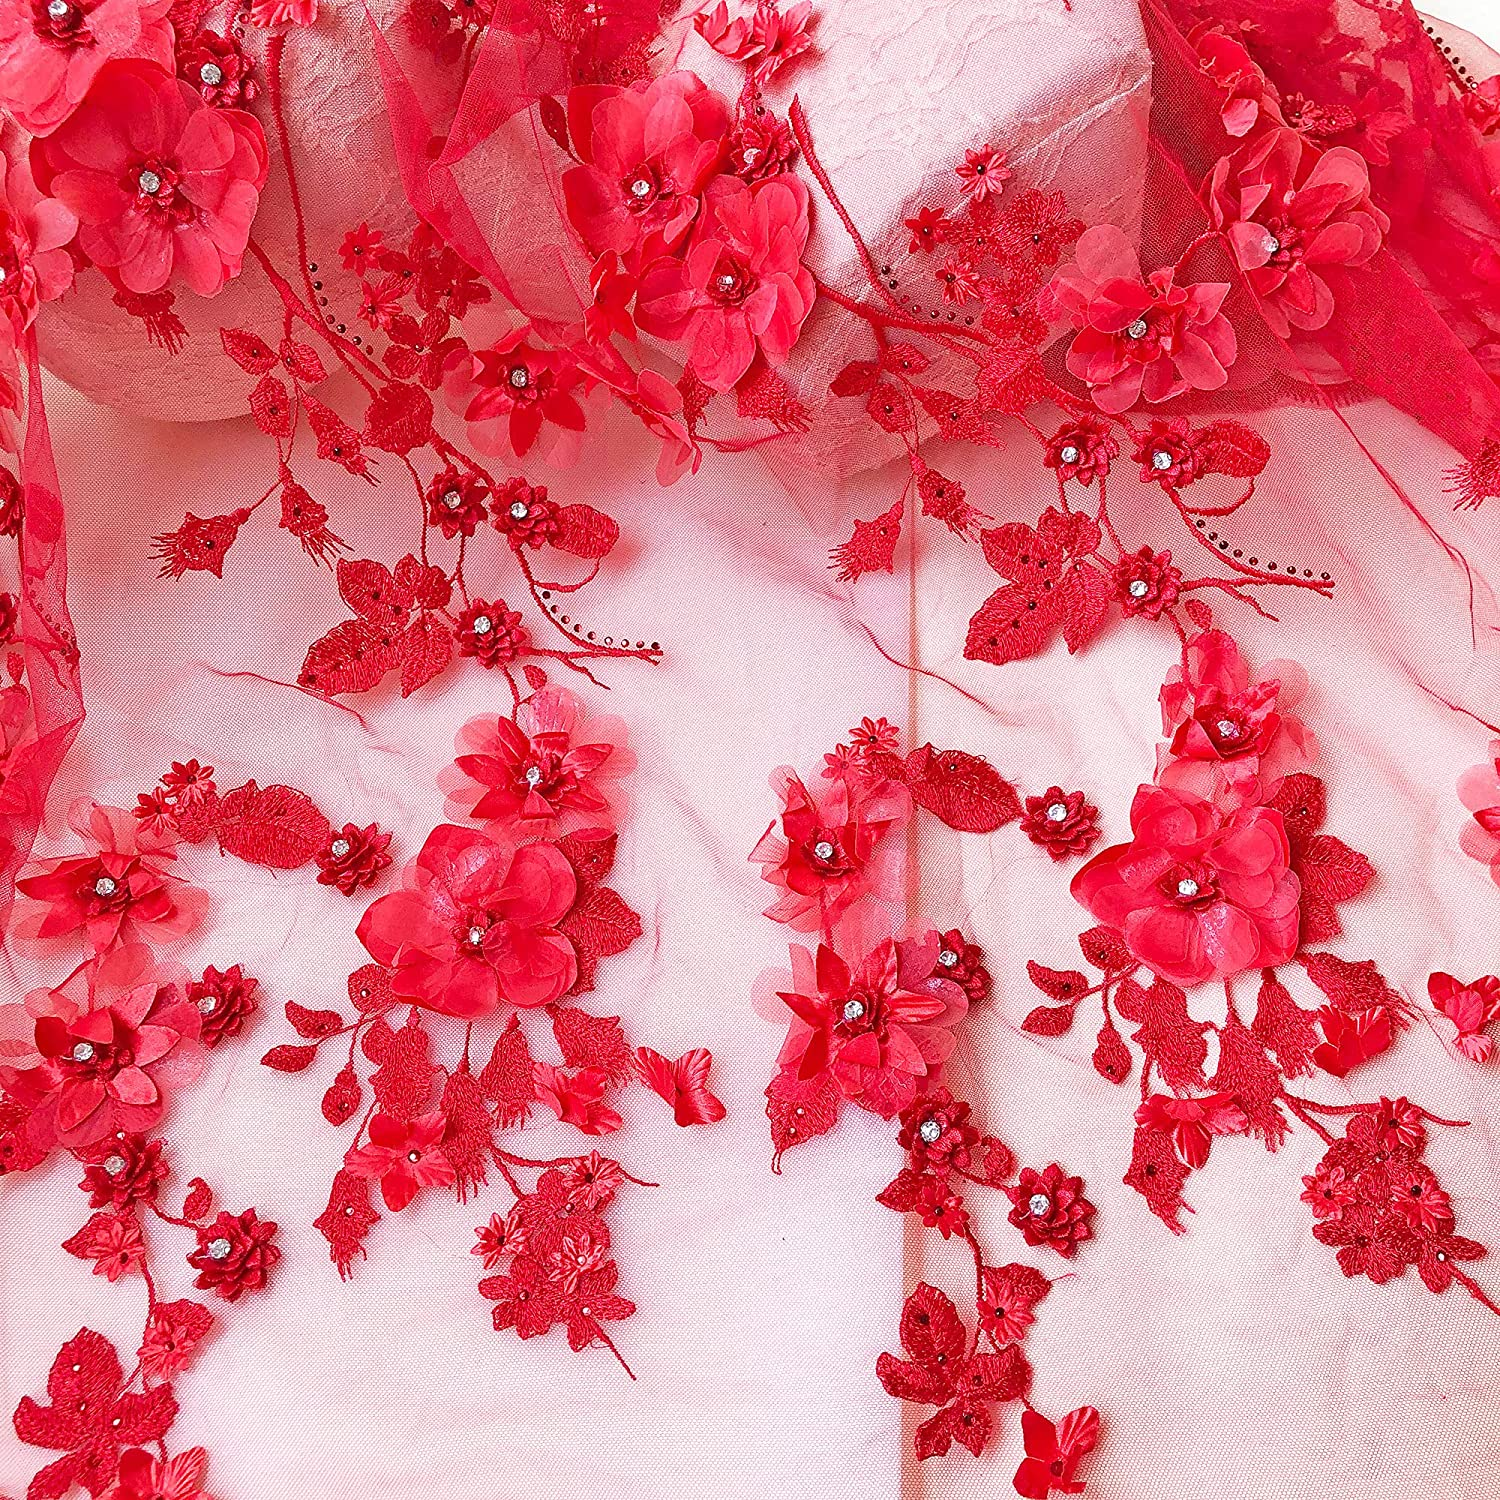 Exquisite Sequin Lace Fabric 3D Beaded Lace Fabric By The Yard Tulle Embroidery Lace Fabric for Wedding Dress,Floral Lace,Bridal Gown Lace